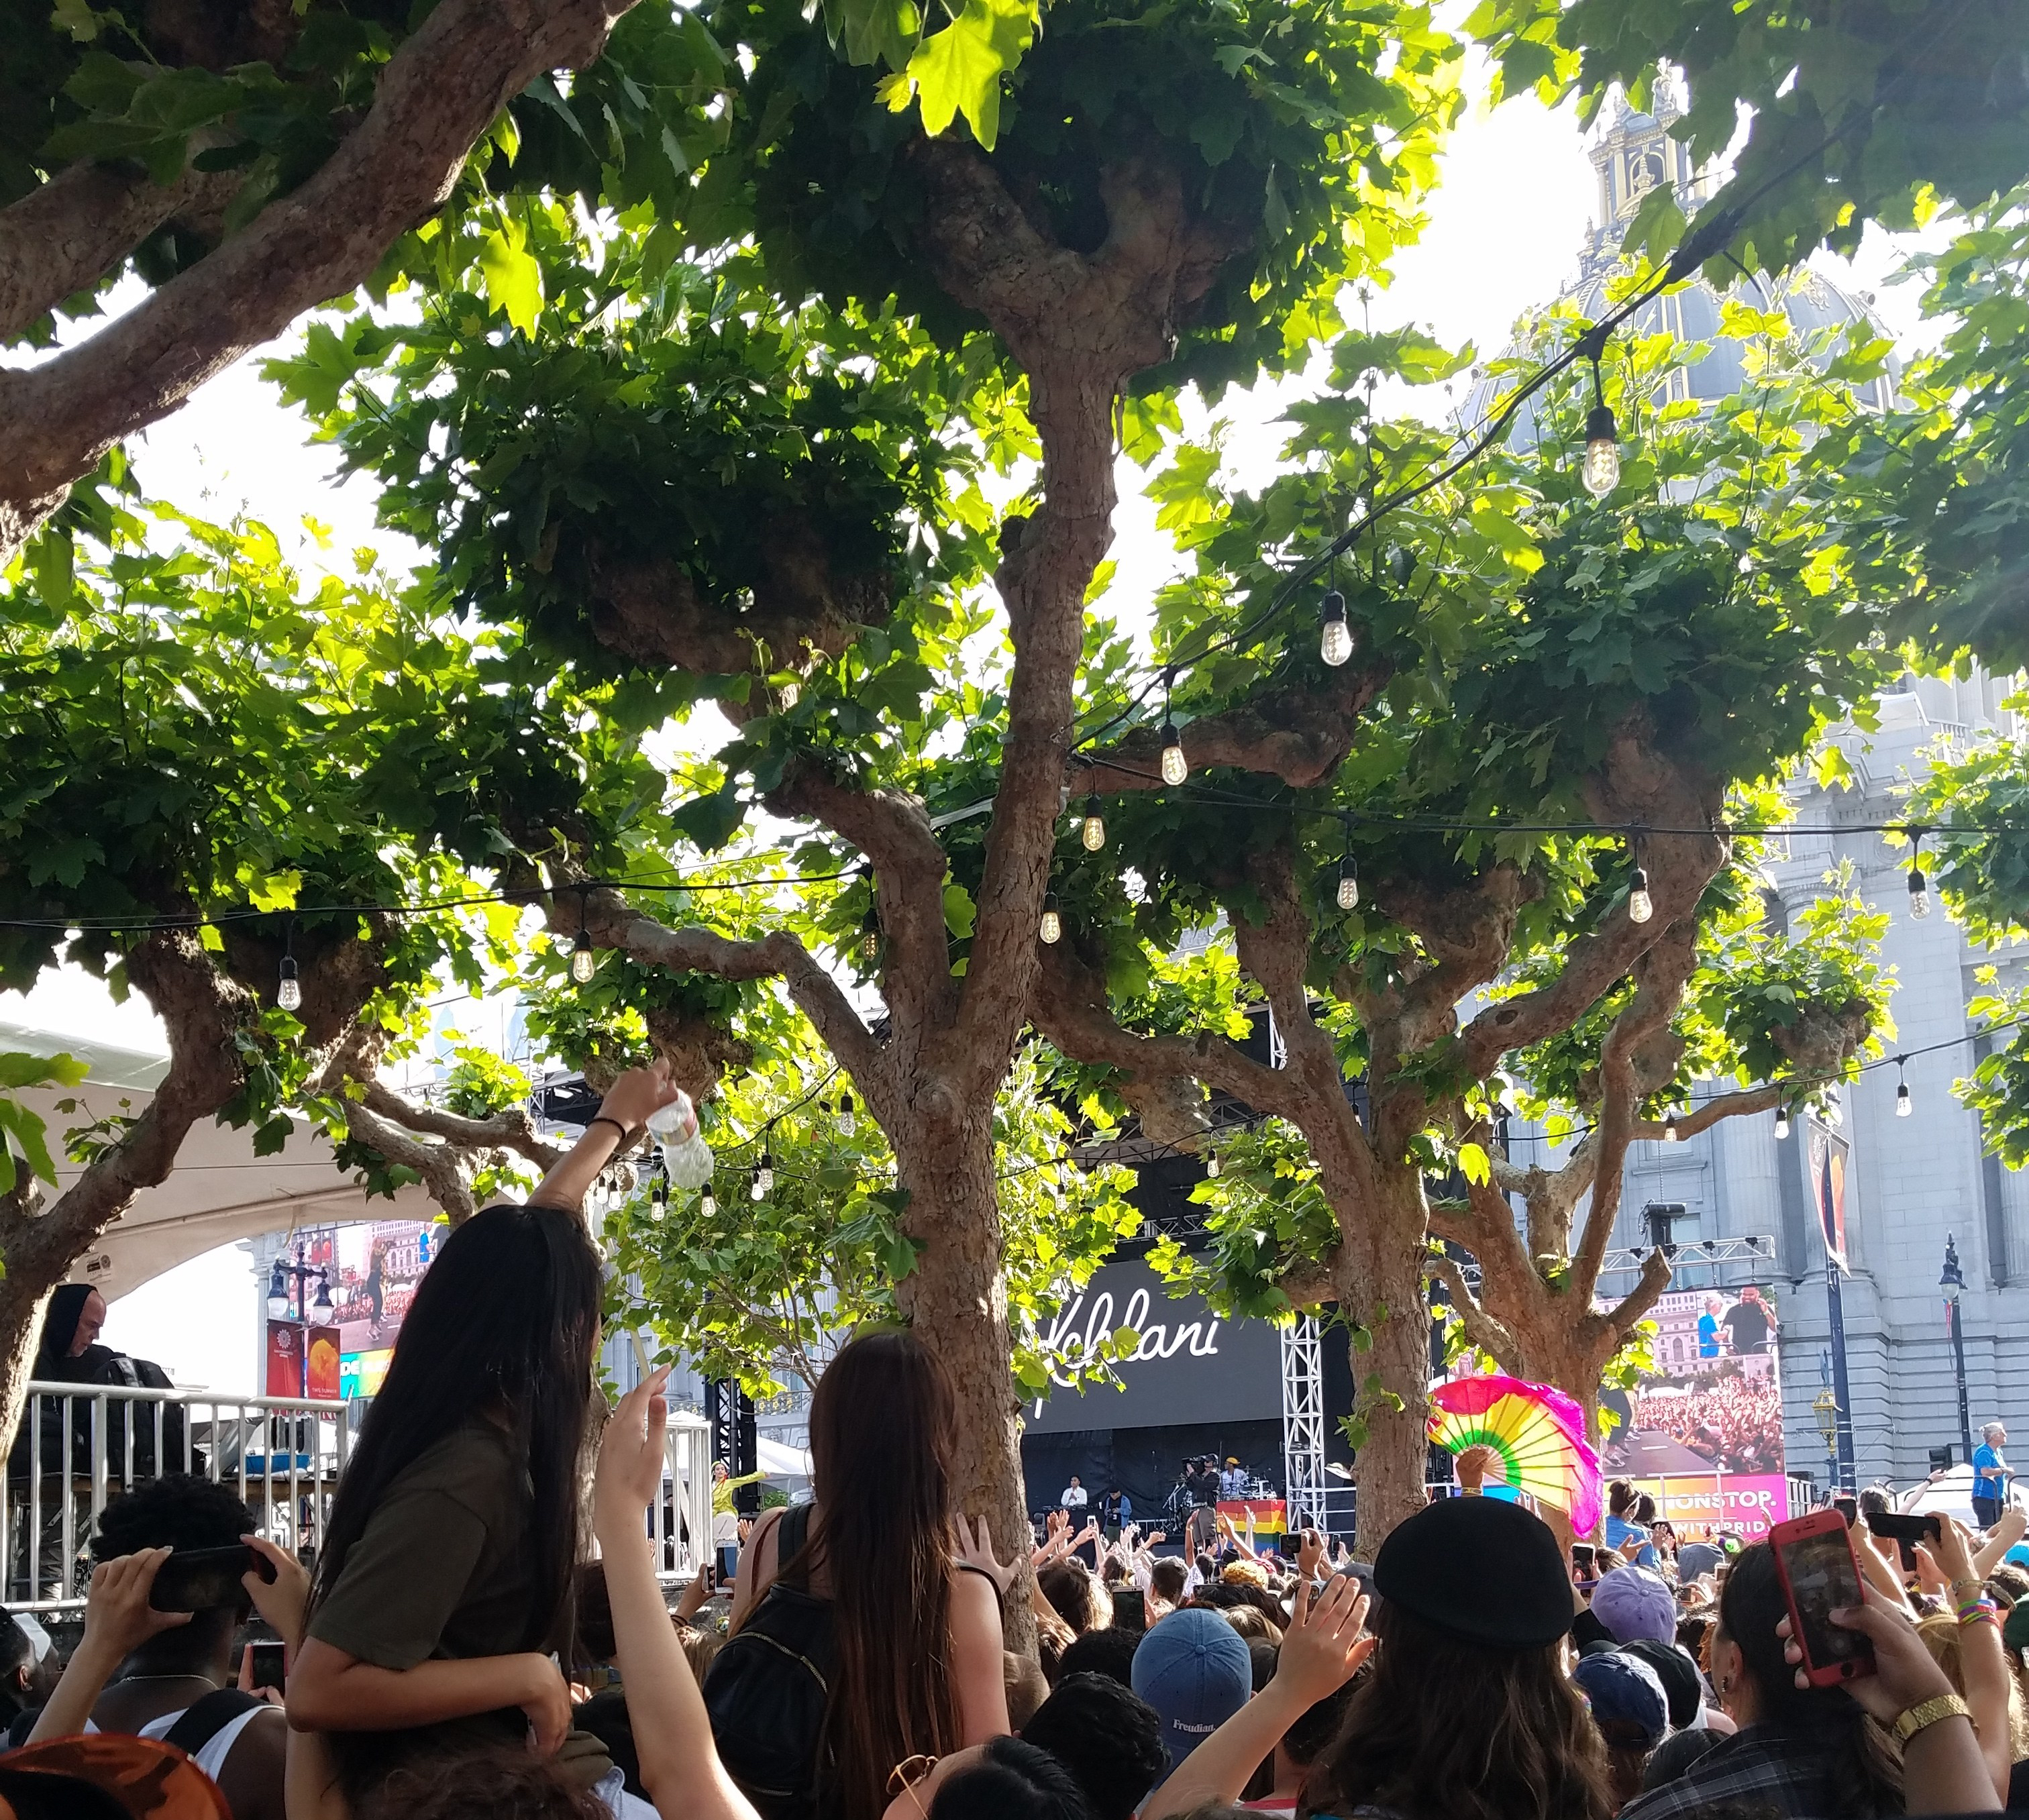 Picture from crowd at 2018 San Francisco Gay Pride facing the stage.